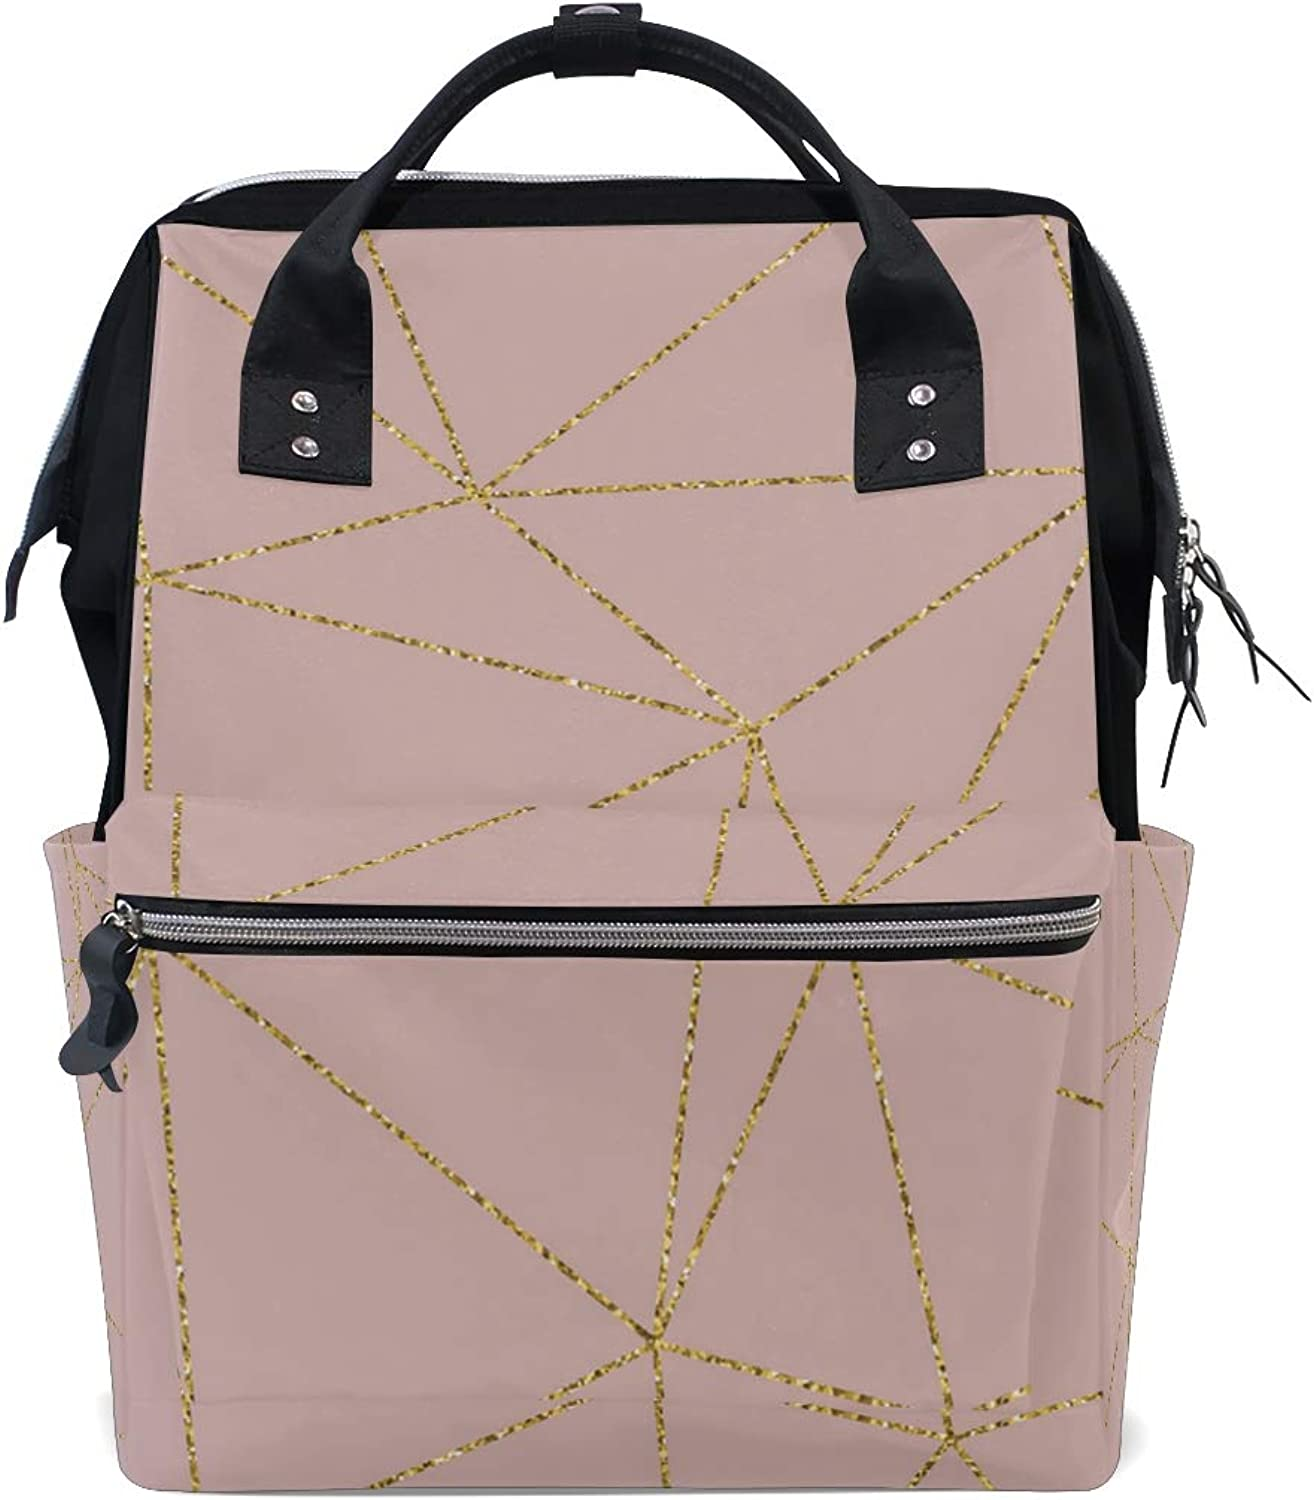 Pink is Very Noble Leisure College Backpack Light Travel Male and Female Student Backpack Lightweight Canvas Backpack Medium Handbag Fashion Style Multifunction